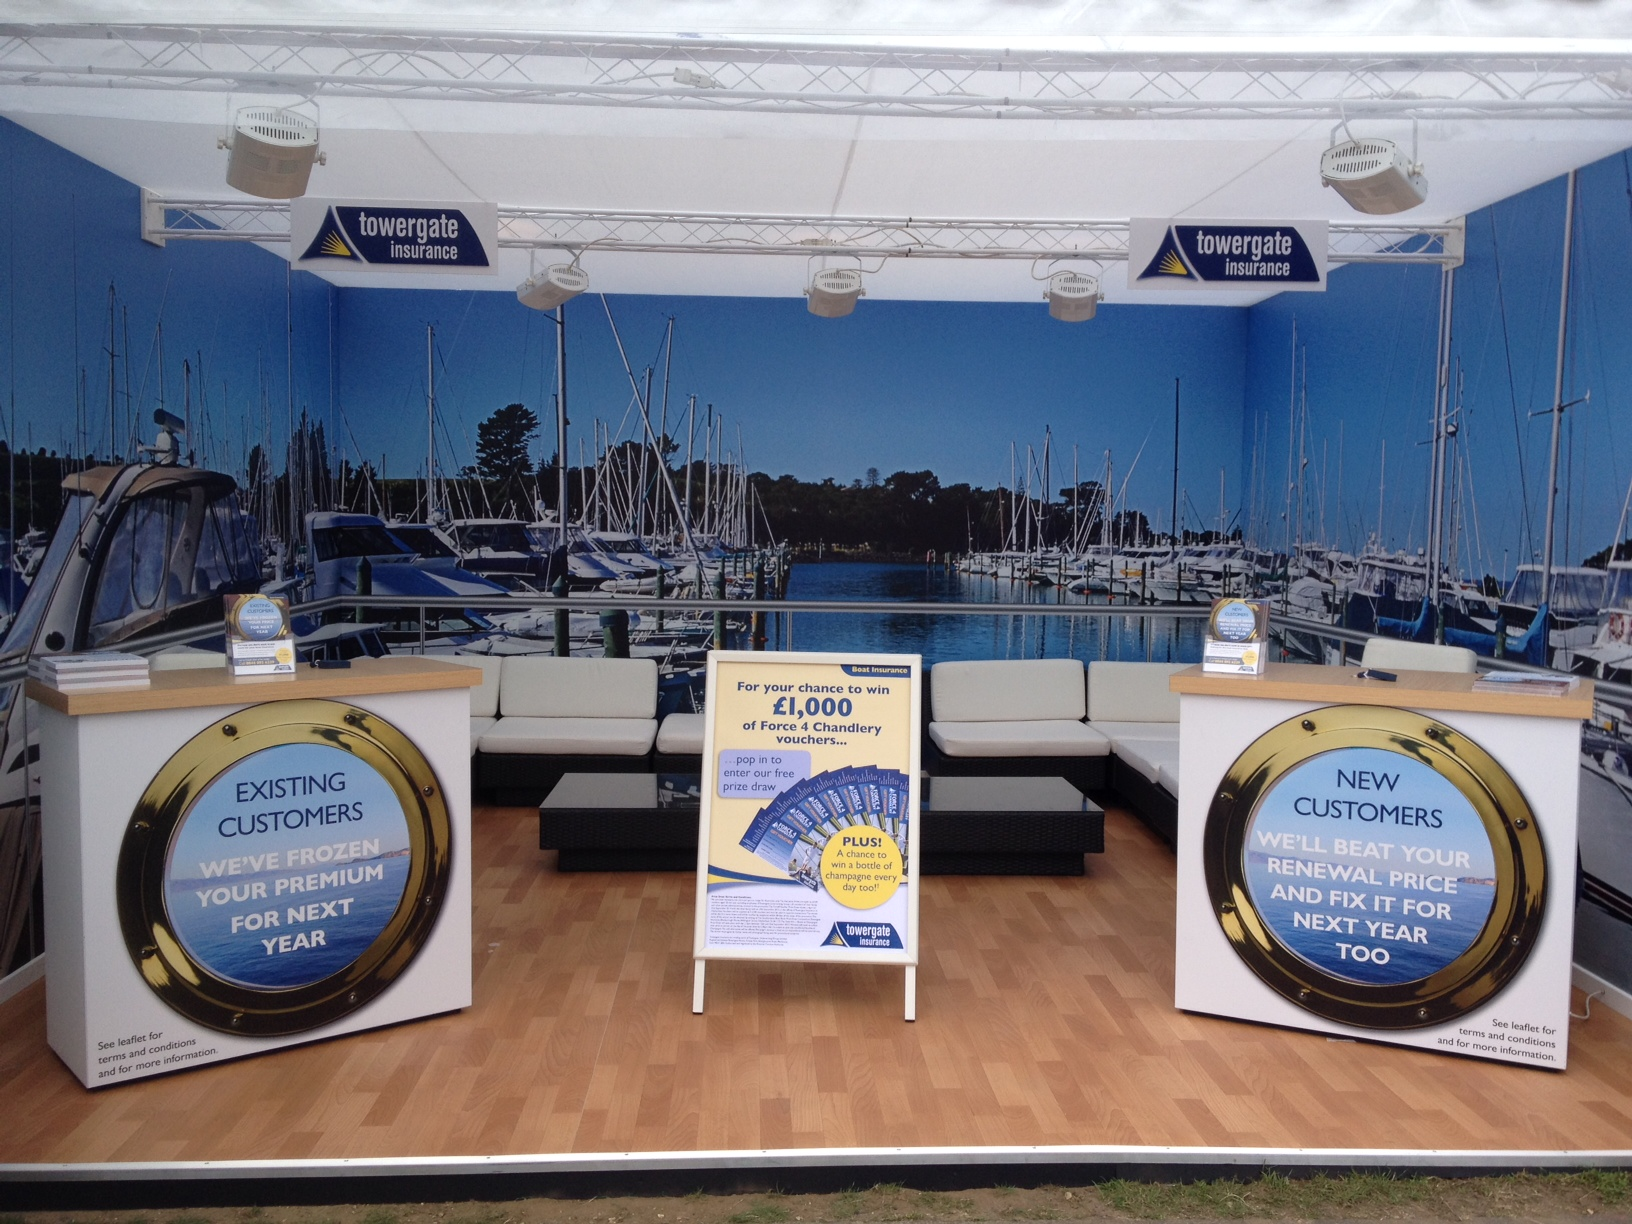 Towergate Insurance exhibition and display solutions by Blaze Communication